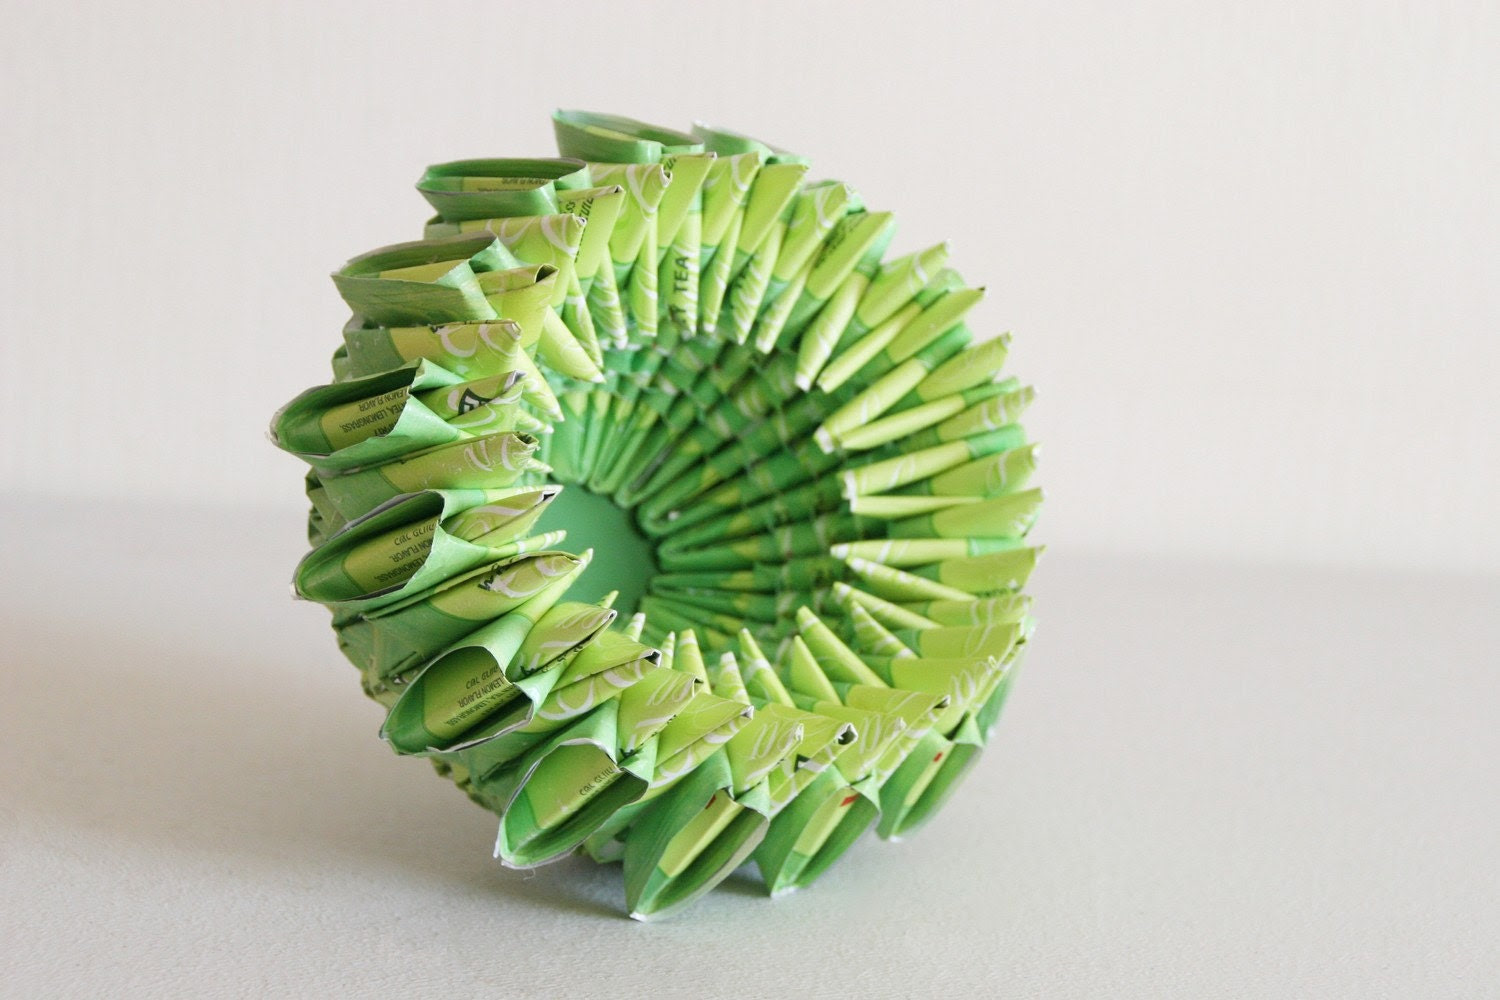 Green Sun Bowl - made out of folded tea bags wraps